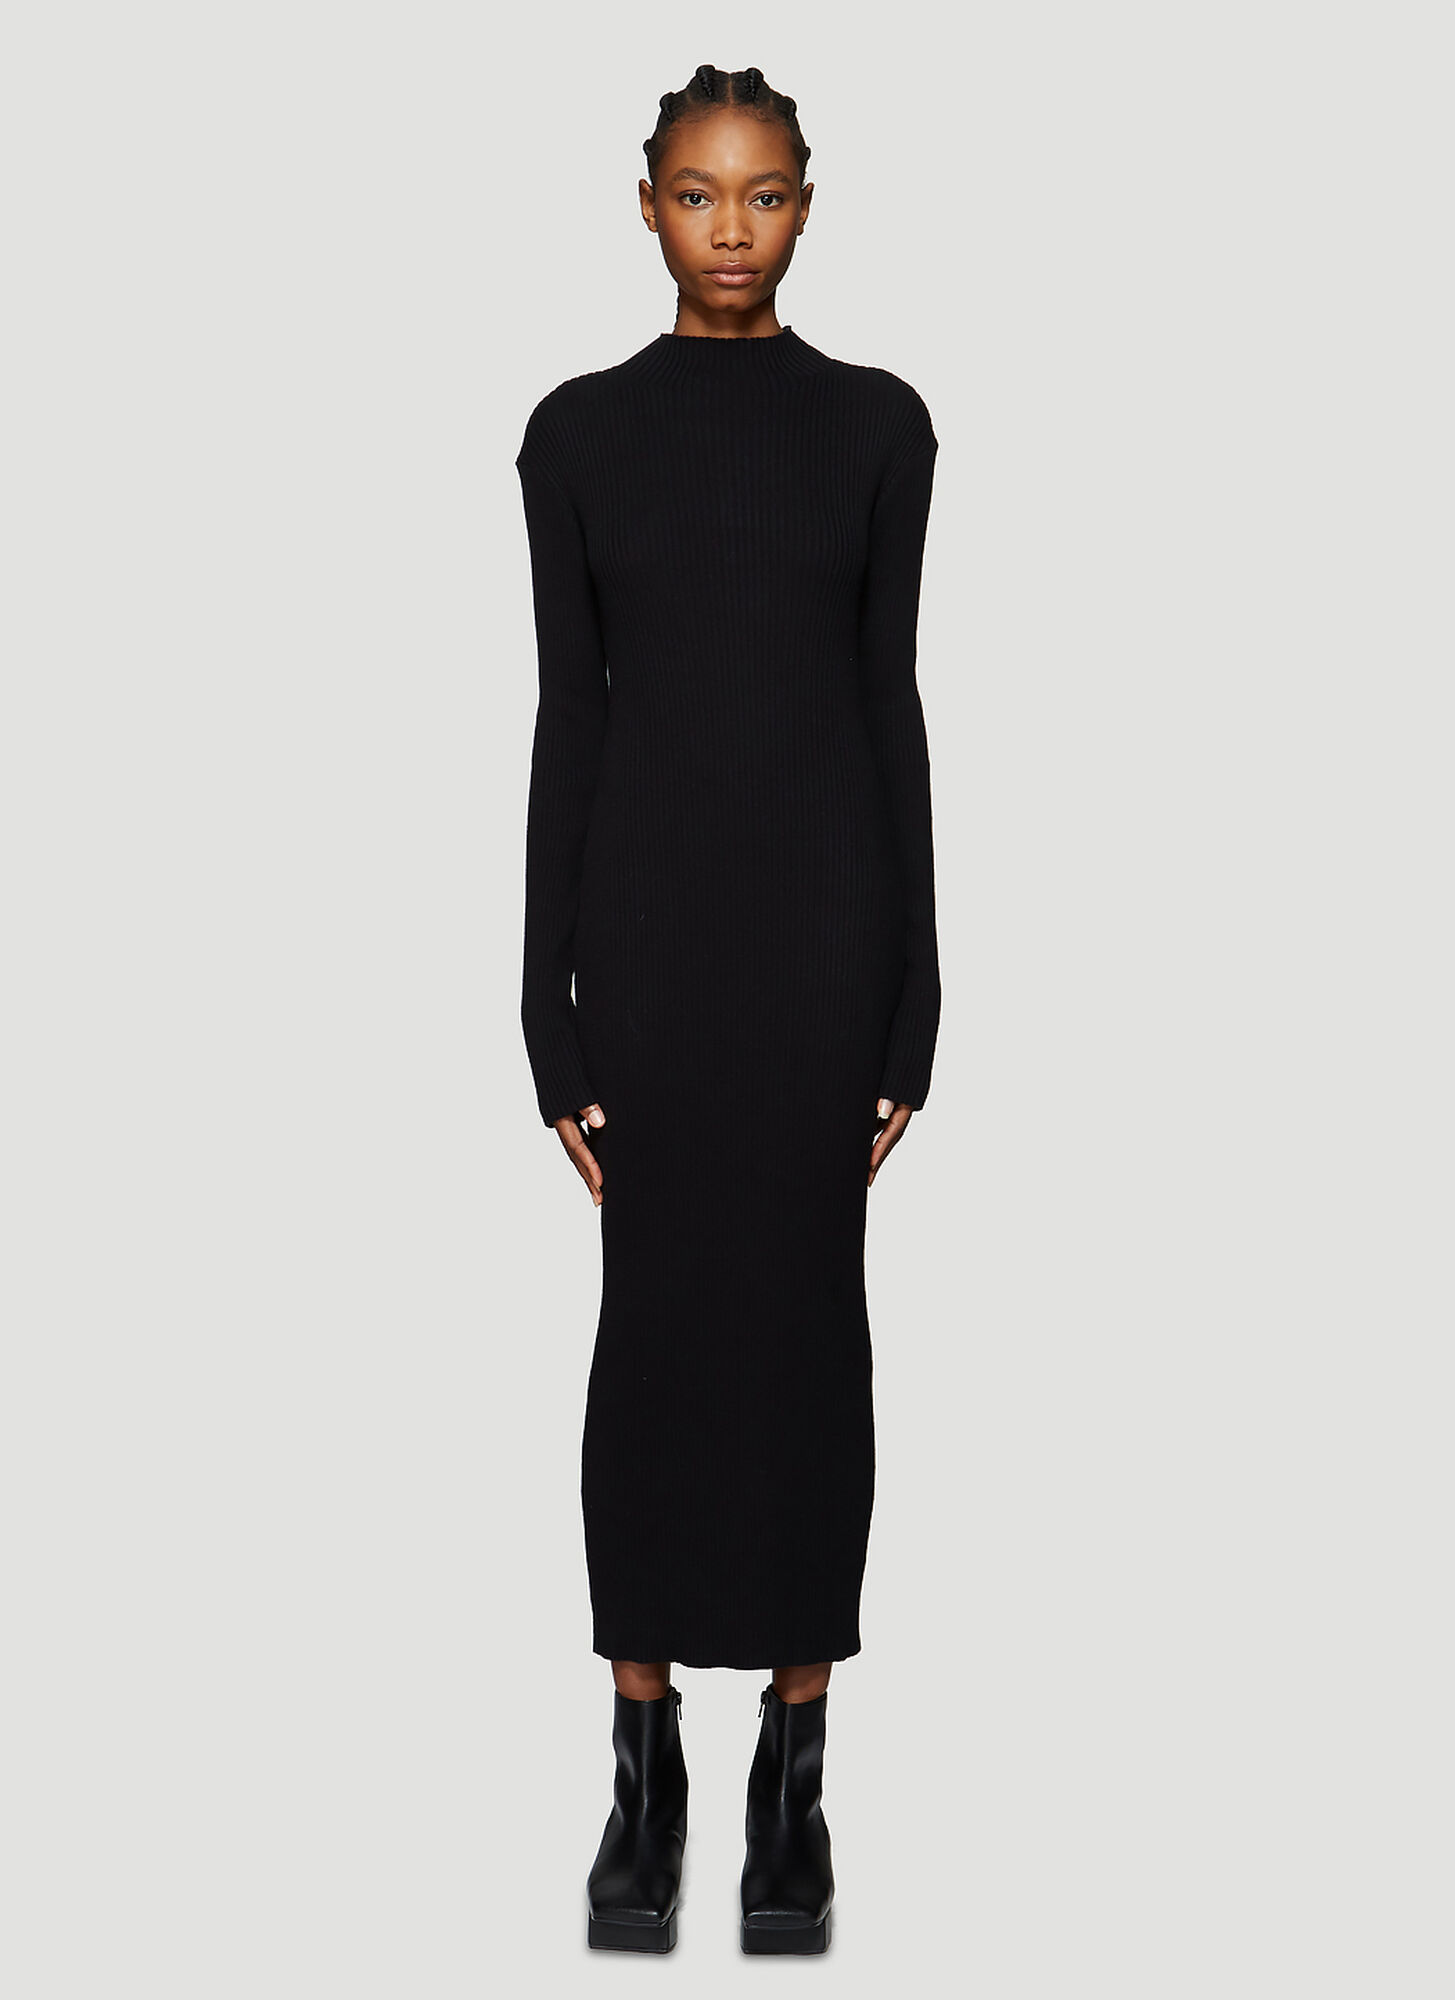 Our Legacy High-Neck Ribbed Knit Dress in Black